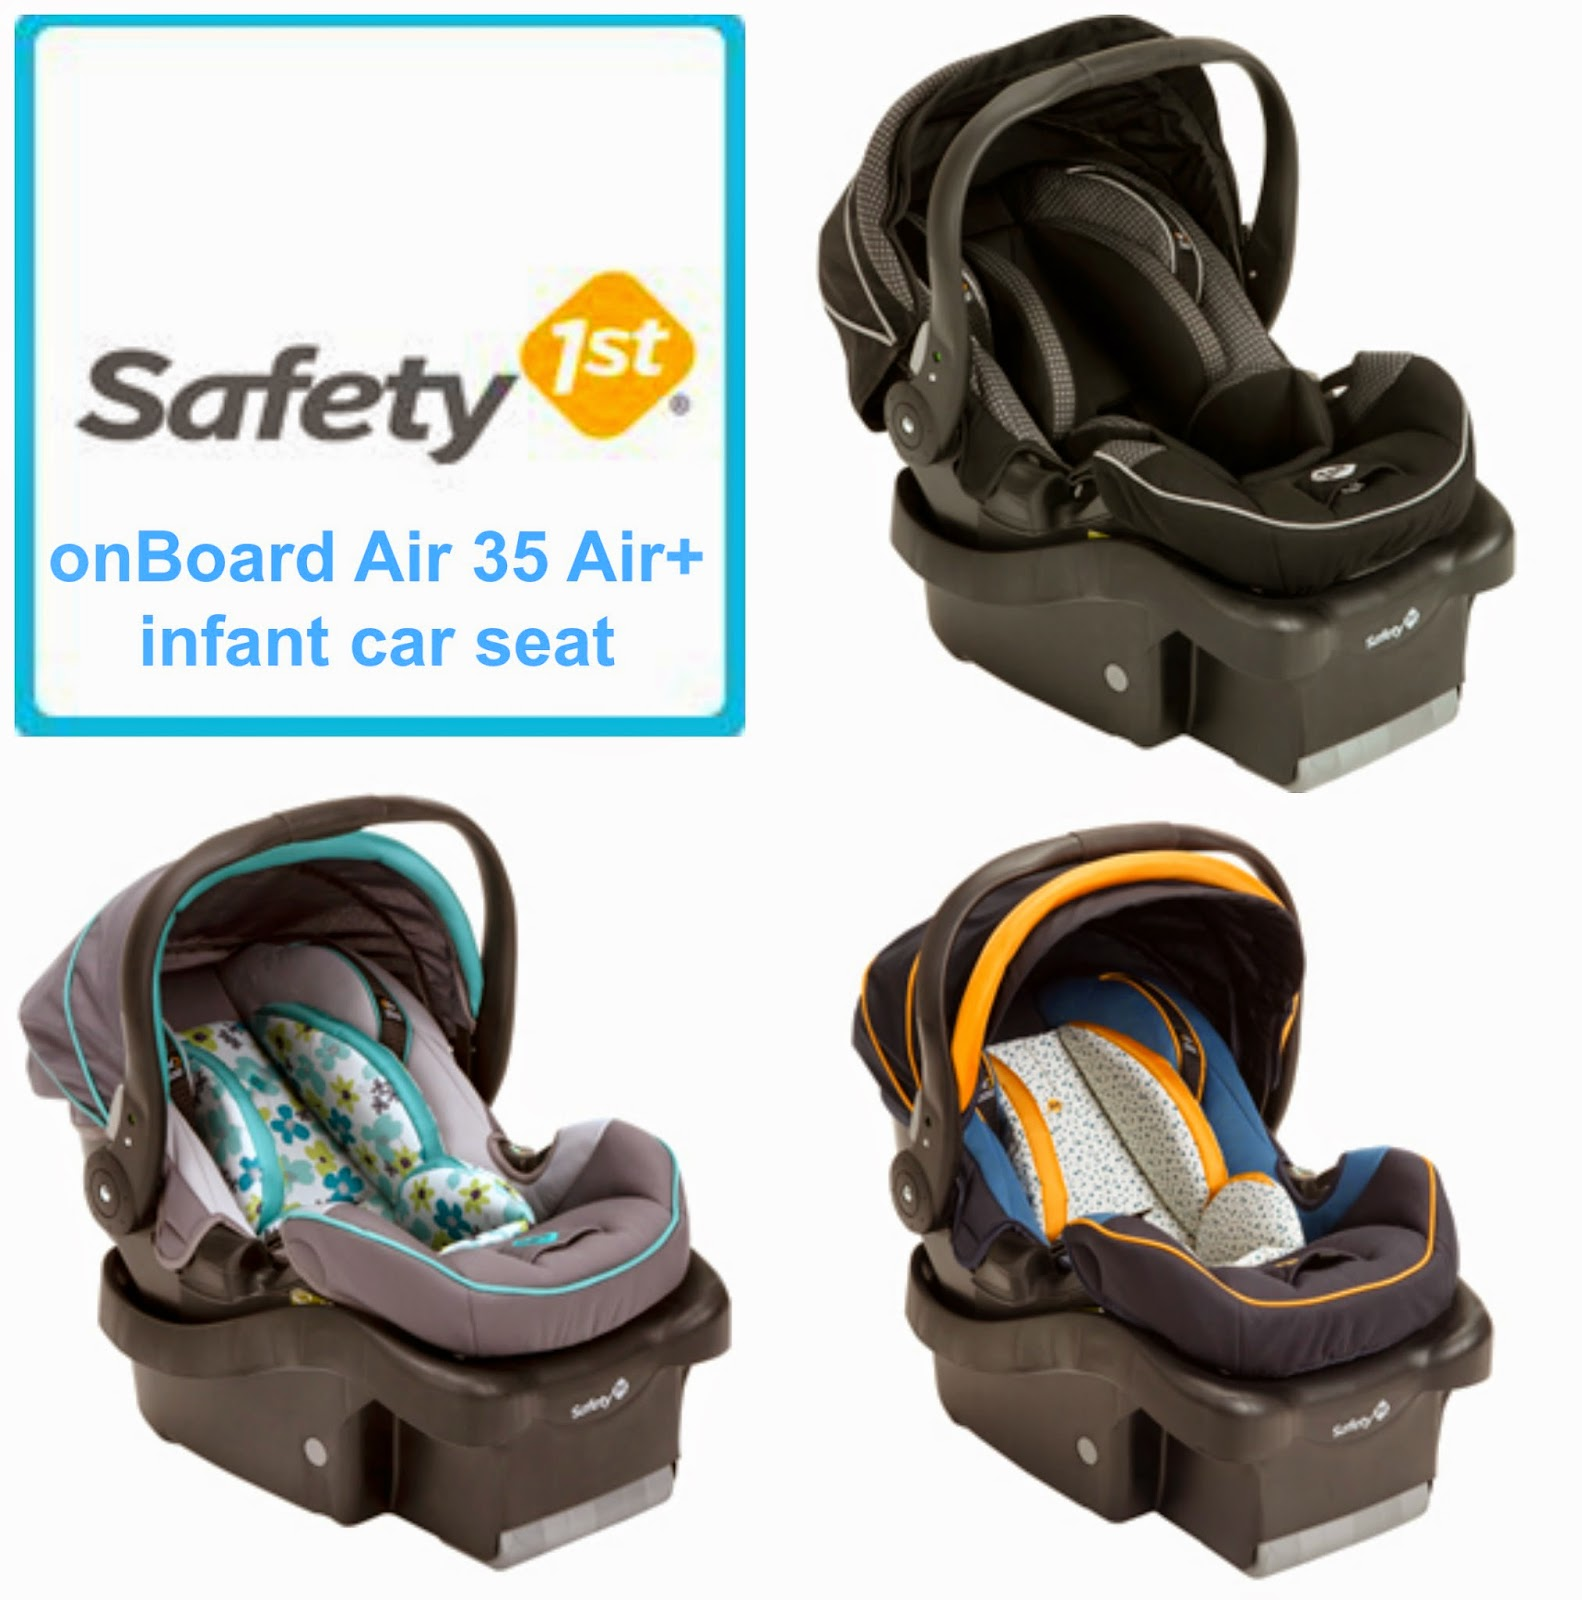 First The Safety 1st OnBoard Air 35 Plus Infant Car Seat It Allows For A Child To Ride Rear Facing From 4 Pounds Its Equipped With 5 Point Harness